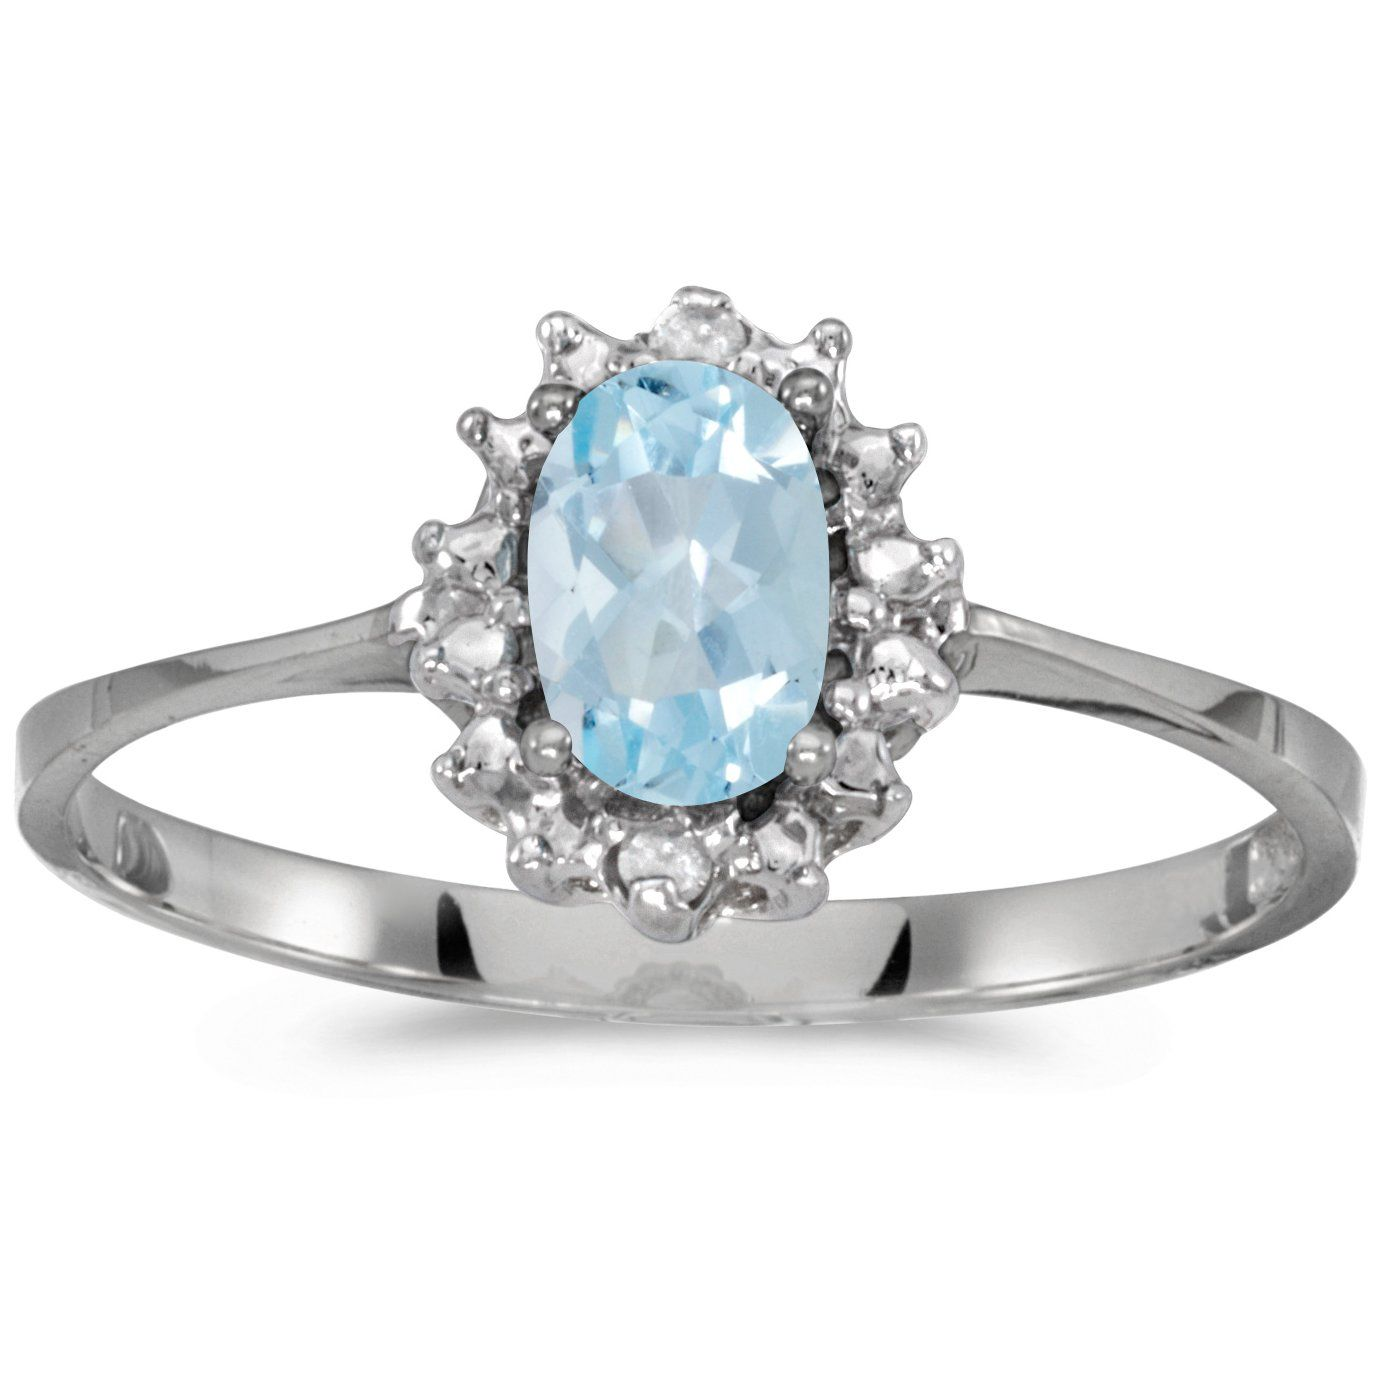 This 10k white gold oval aquamarine and diamond ring features a ...